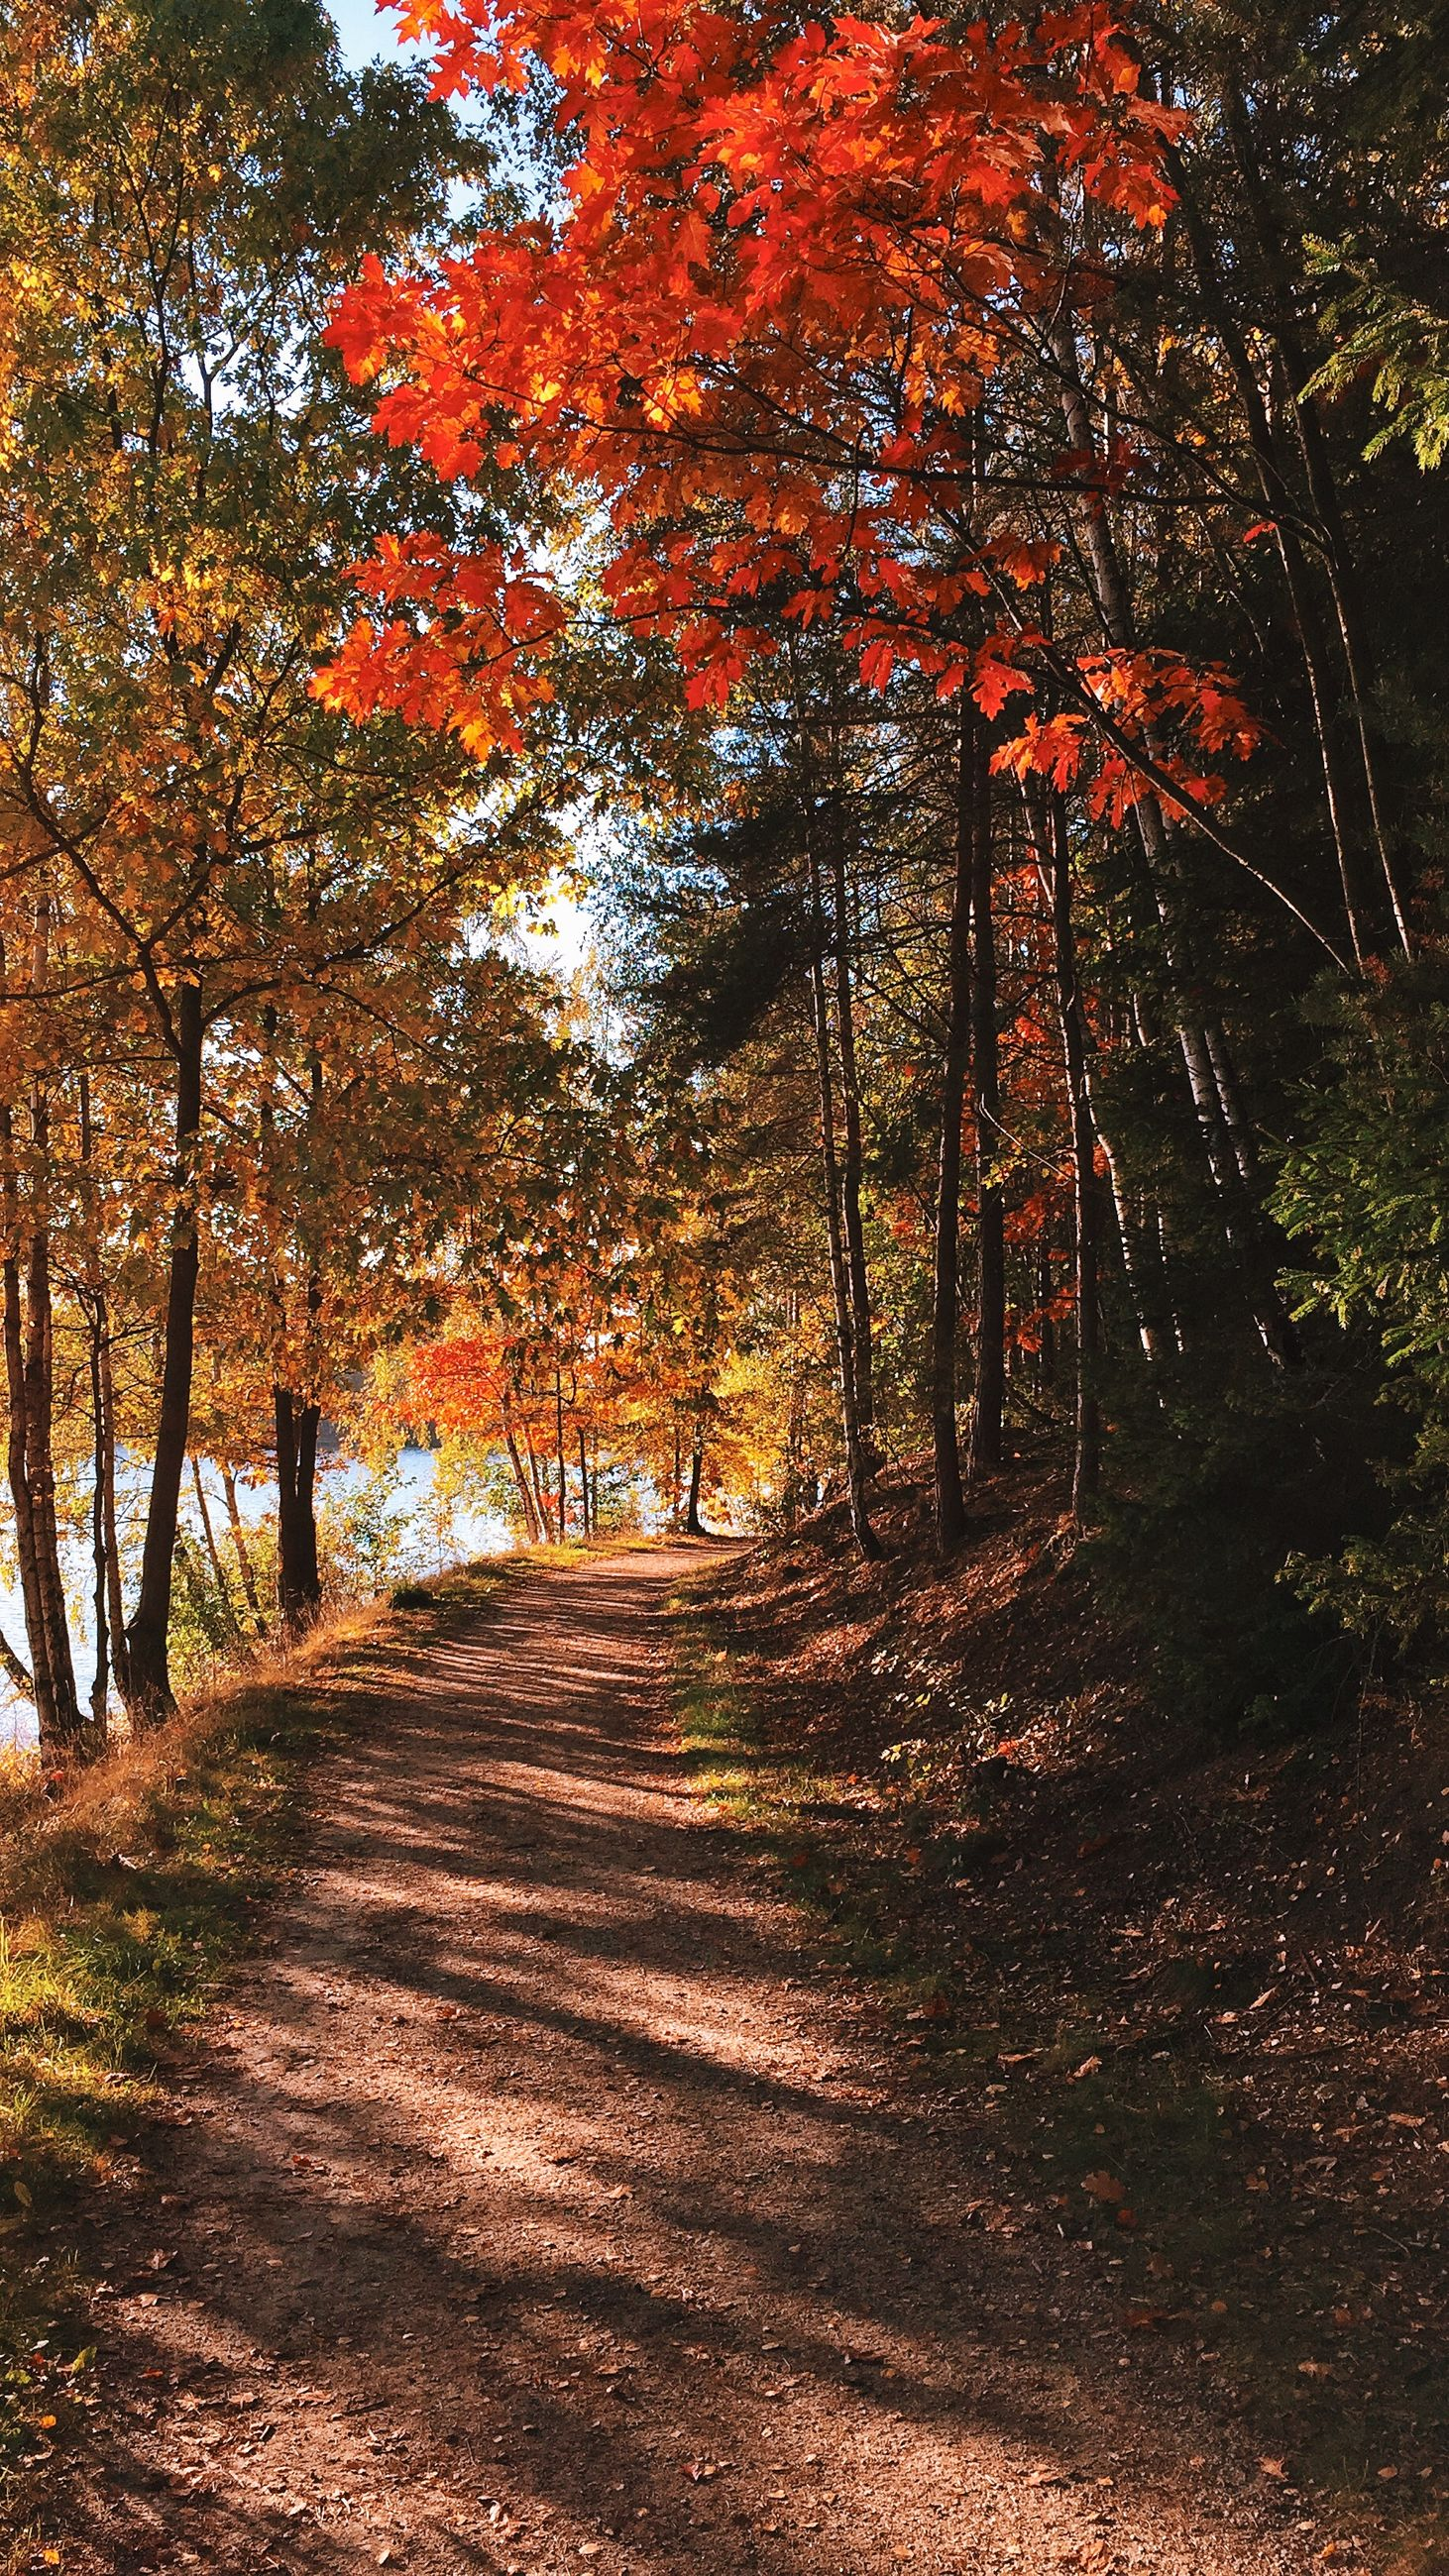 tree, tranquility, the way forward, autumn, tranquil scene, nature, beauty in nature, forest, change, growth, scenics, dirt road, tree trunk, branch, sunlight, footpath, landscape, orange color, season, woodland